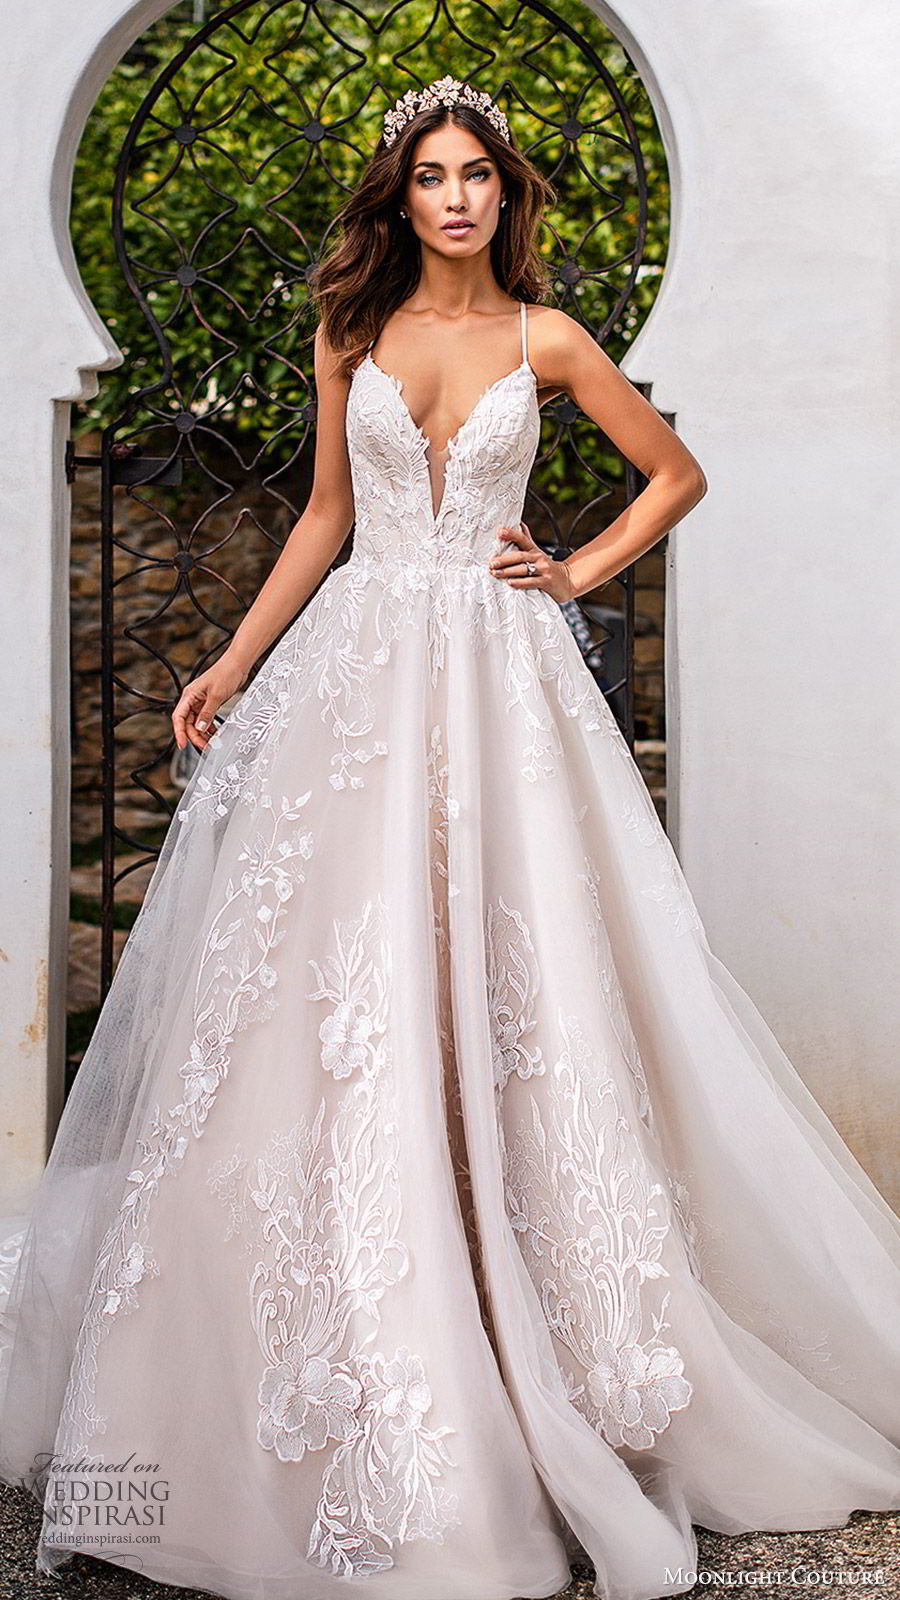 moonlight couture fall 2019 bridal sleeveless thin straps split sweetheart neckline fully embellished a line ball gown wedding dress (9) romantic princess low back chapel train mv